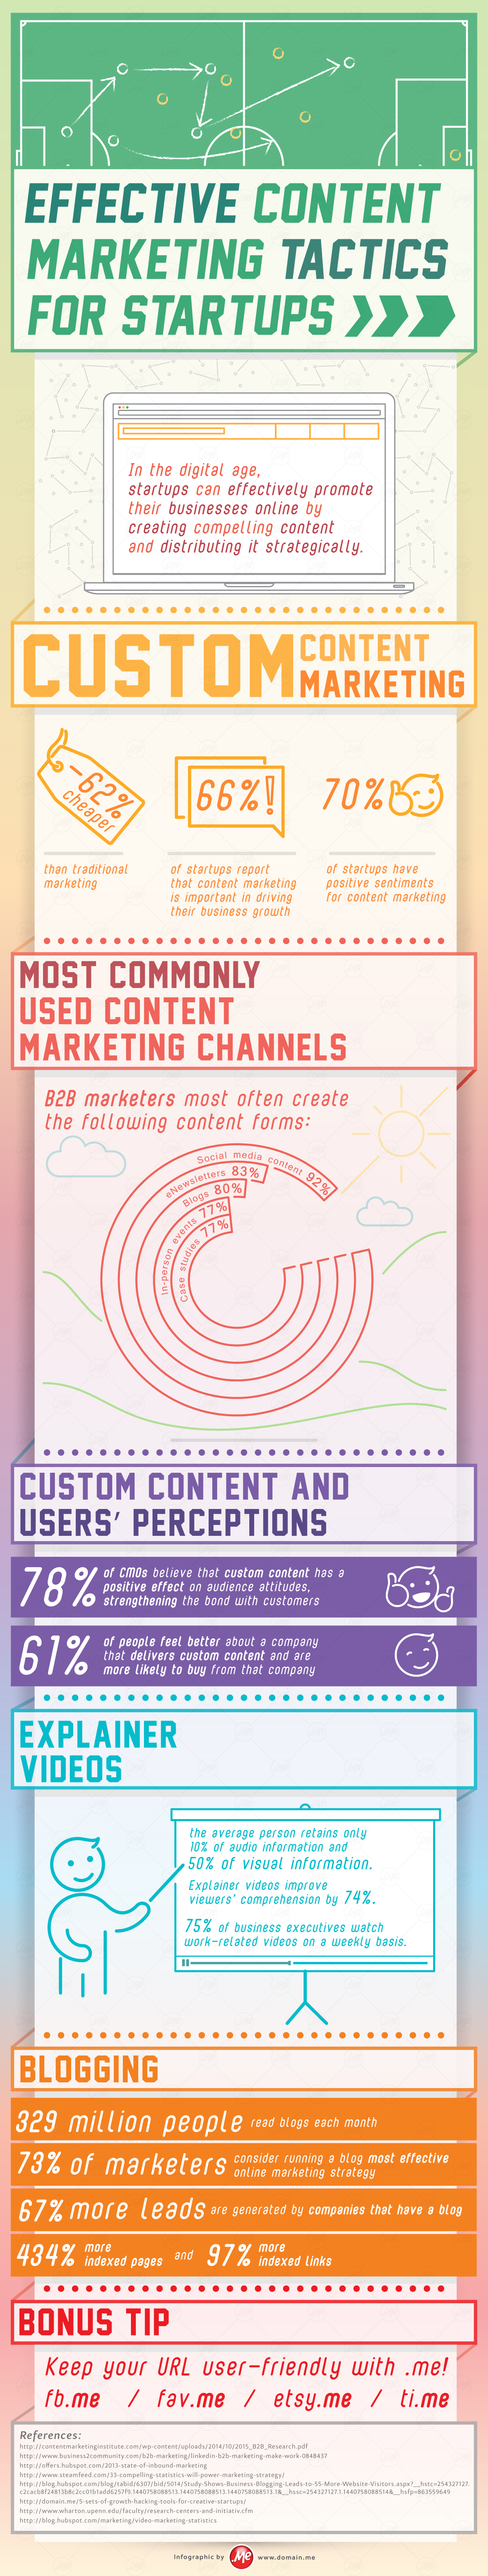 Infographic on effective content marketing tactics for startups